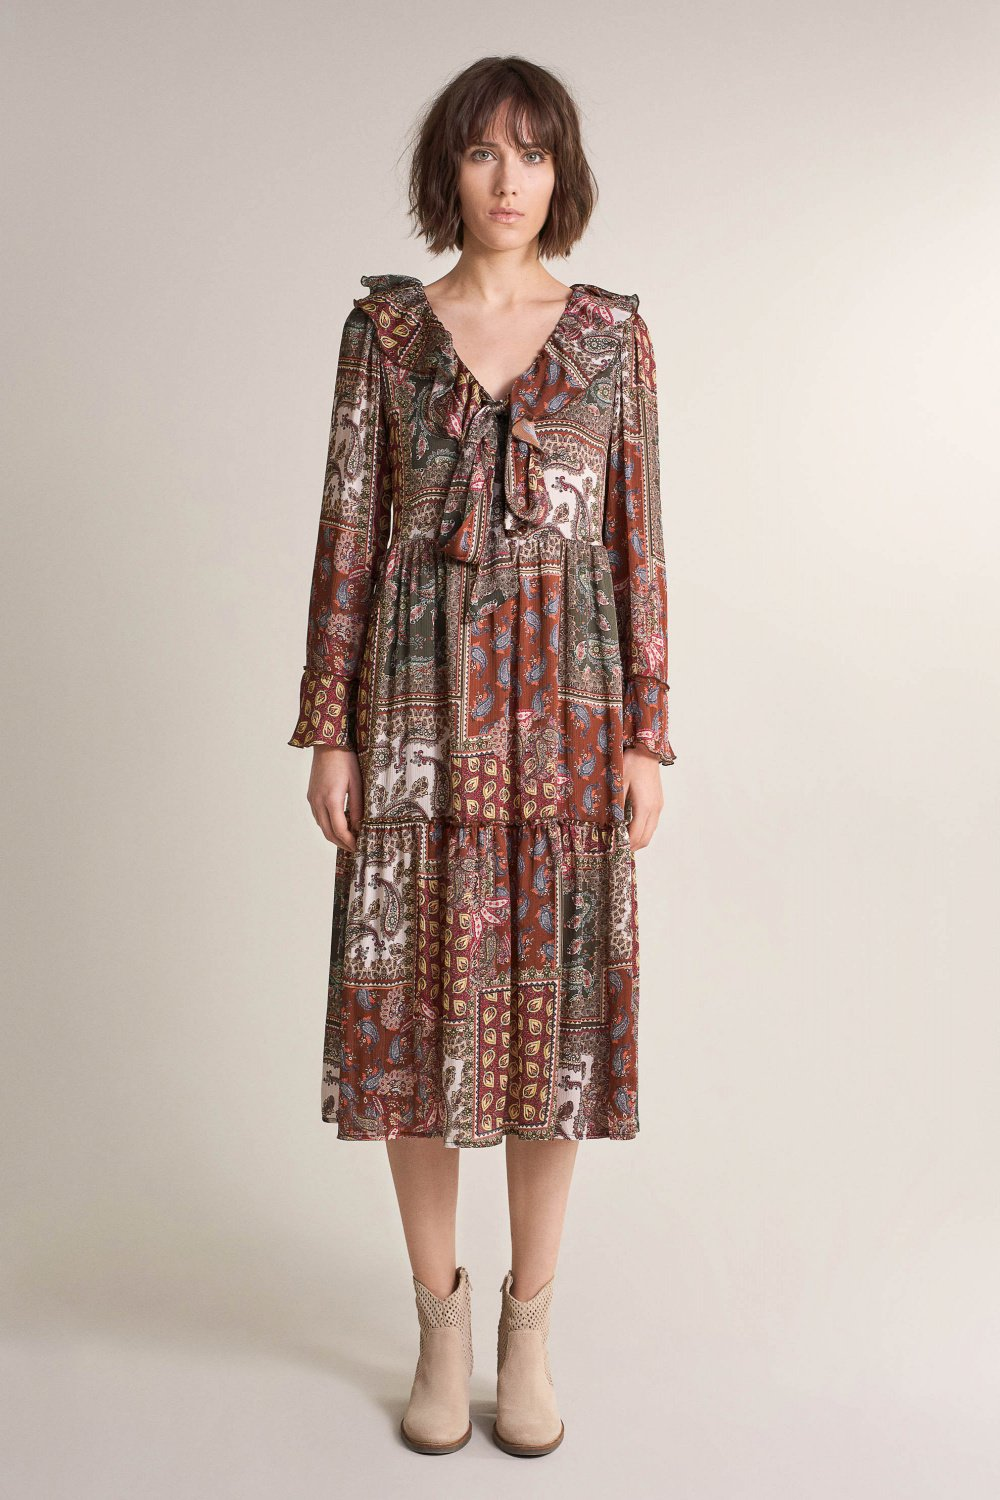 Printed Paisley Dress - Salsa